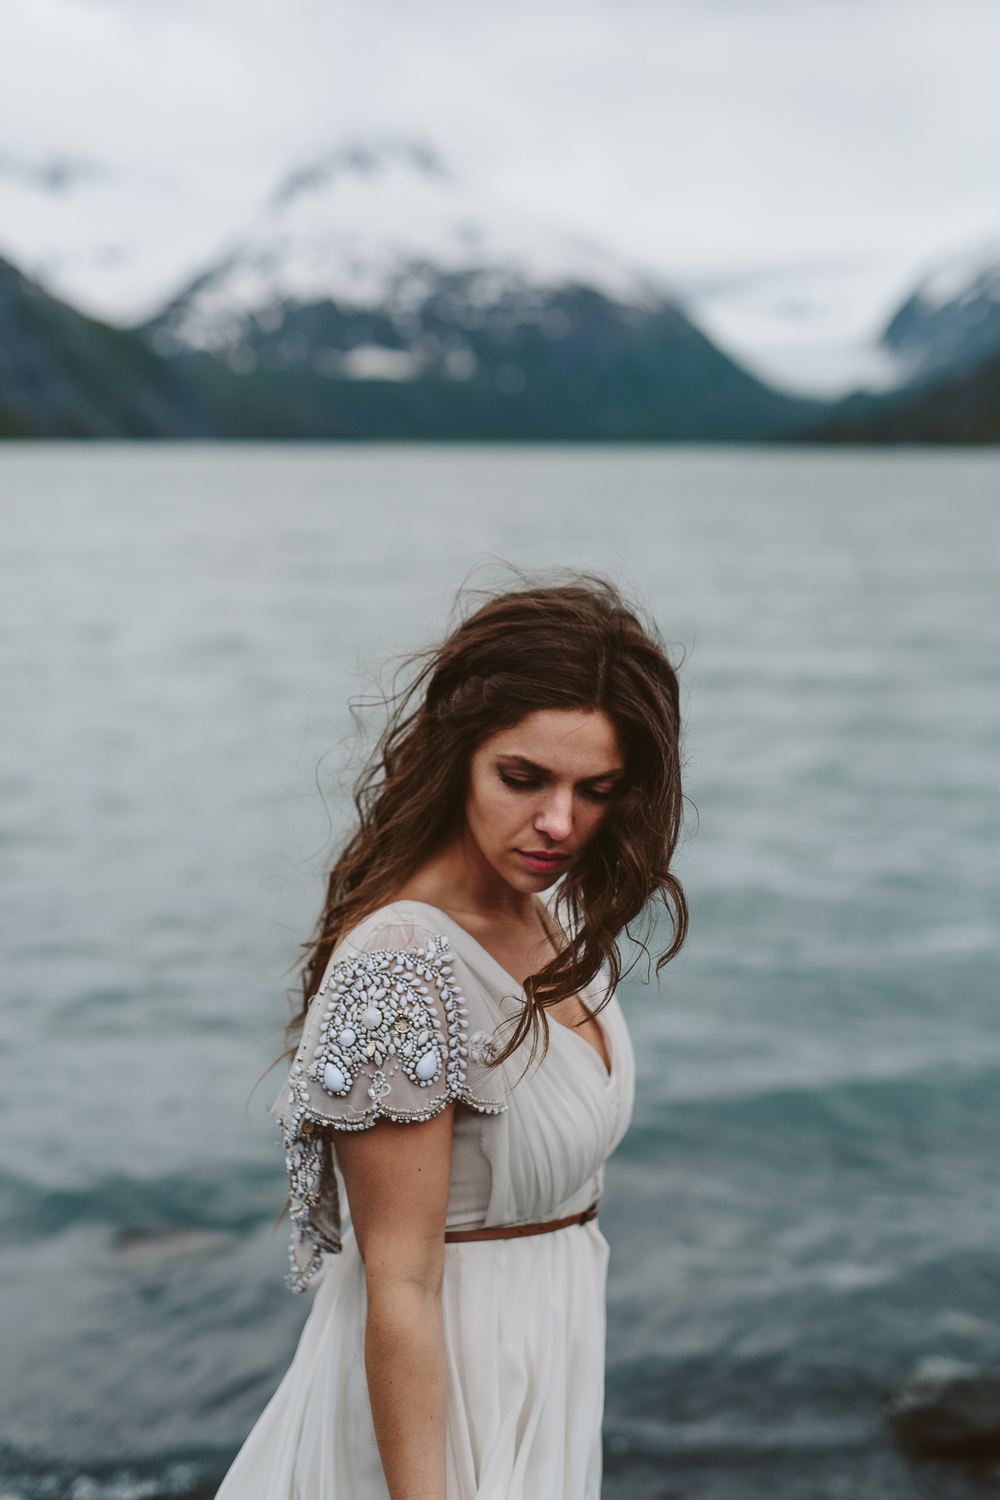 jess-hunter-photographer-alaska-destination-elopement-6025.jpg